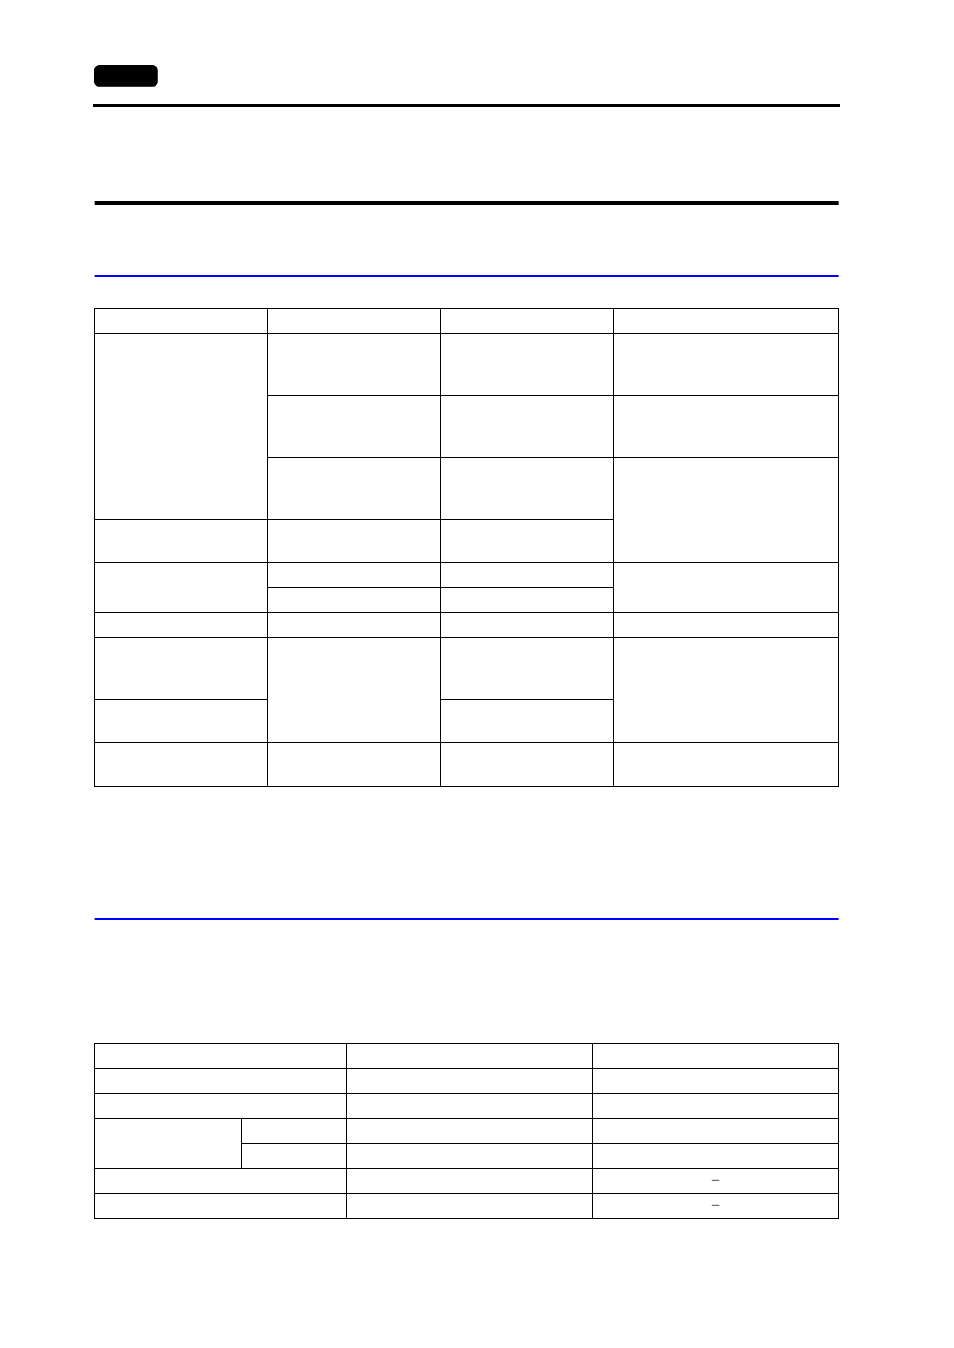 Siemens Plc Available Plcs Communication Setting Hakko Monitouch S7 224 Wiring Diagram V7 Series User Manual Page 297 344